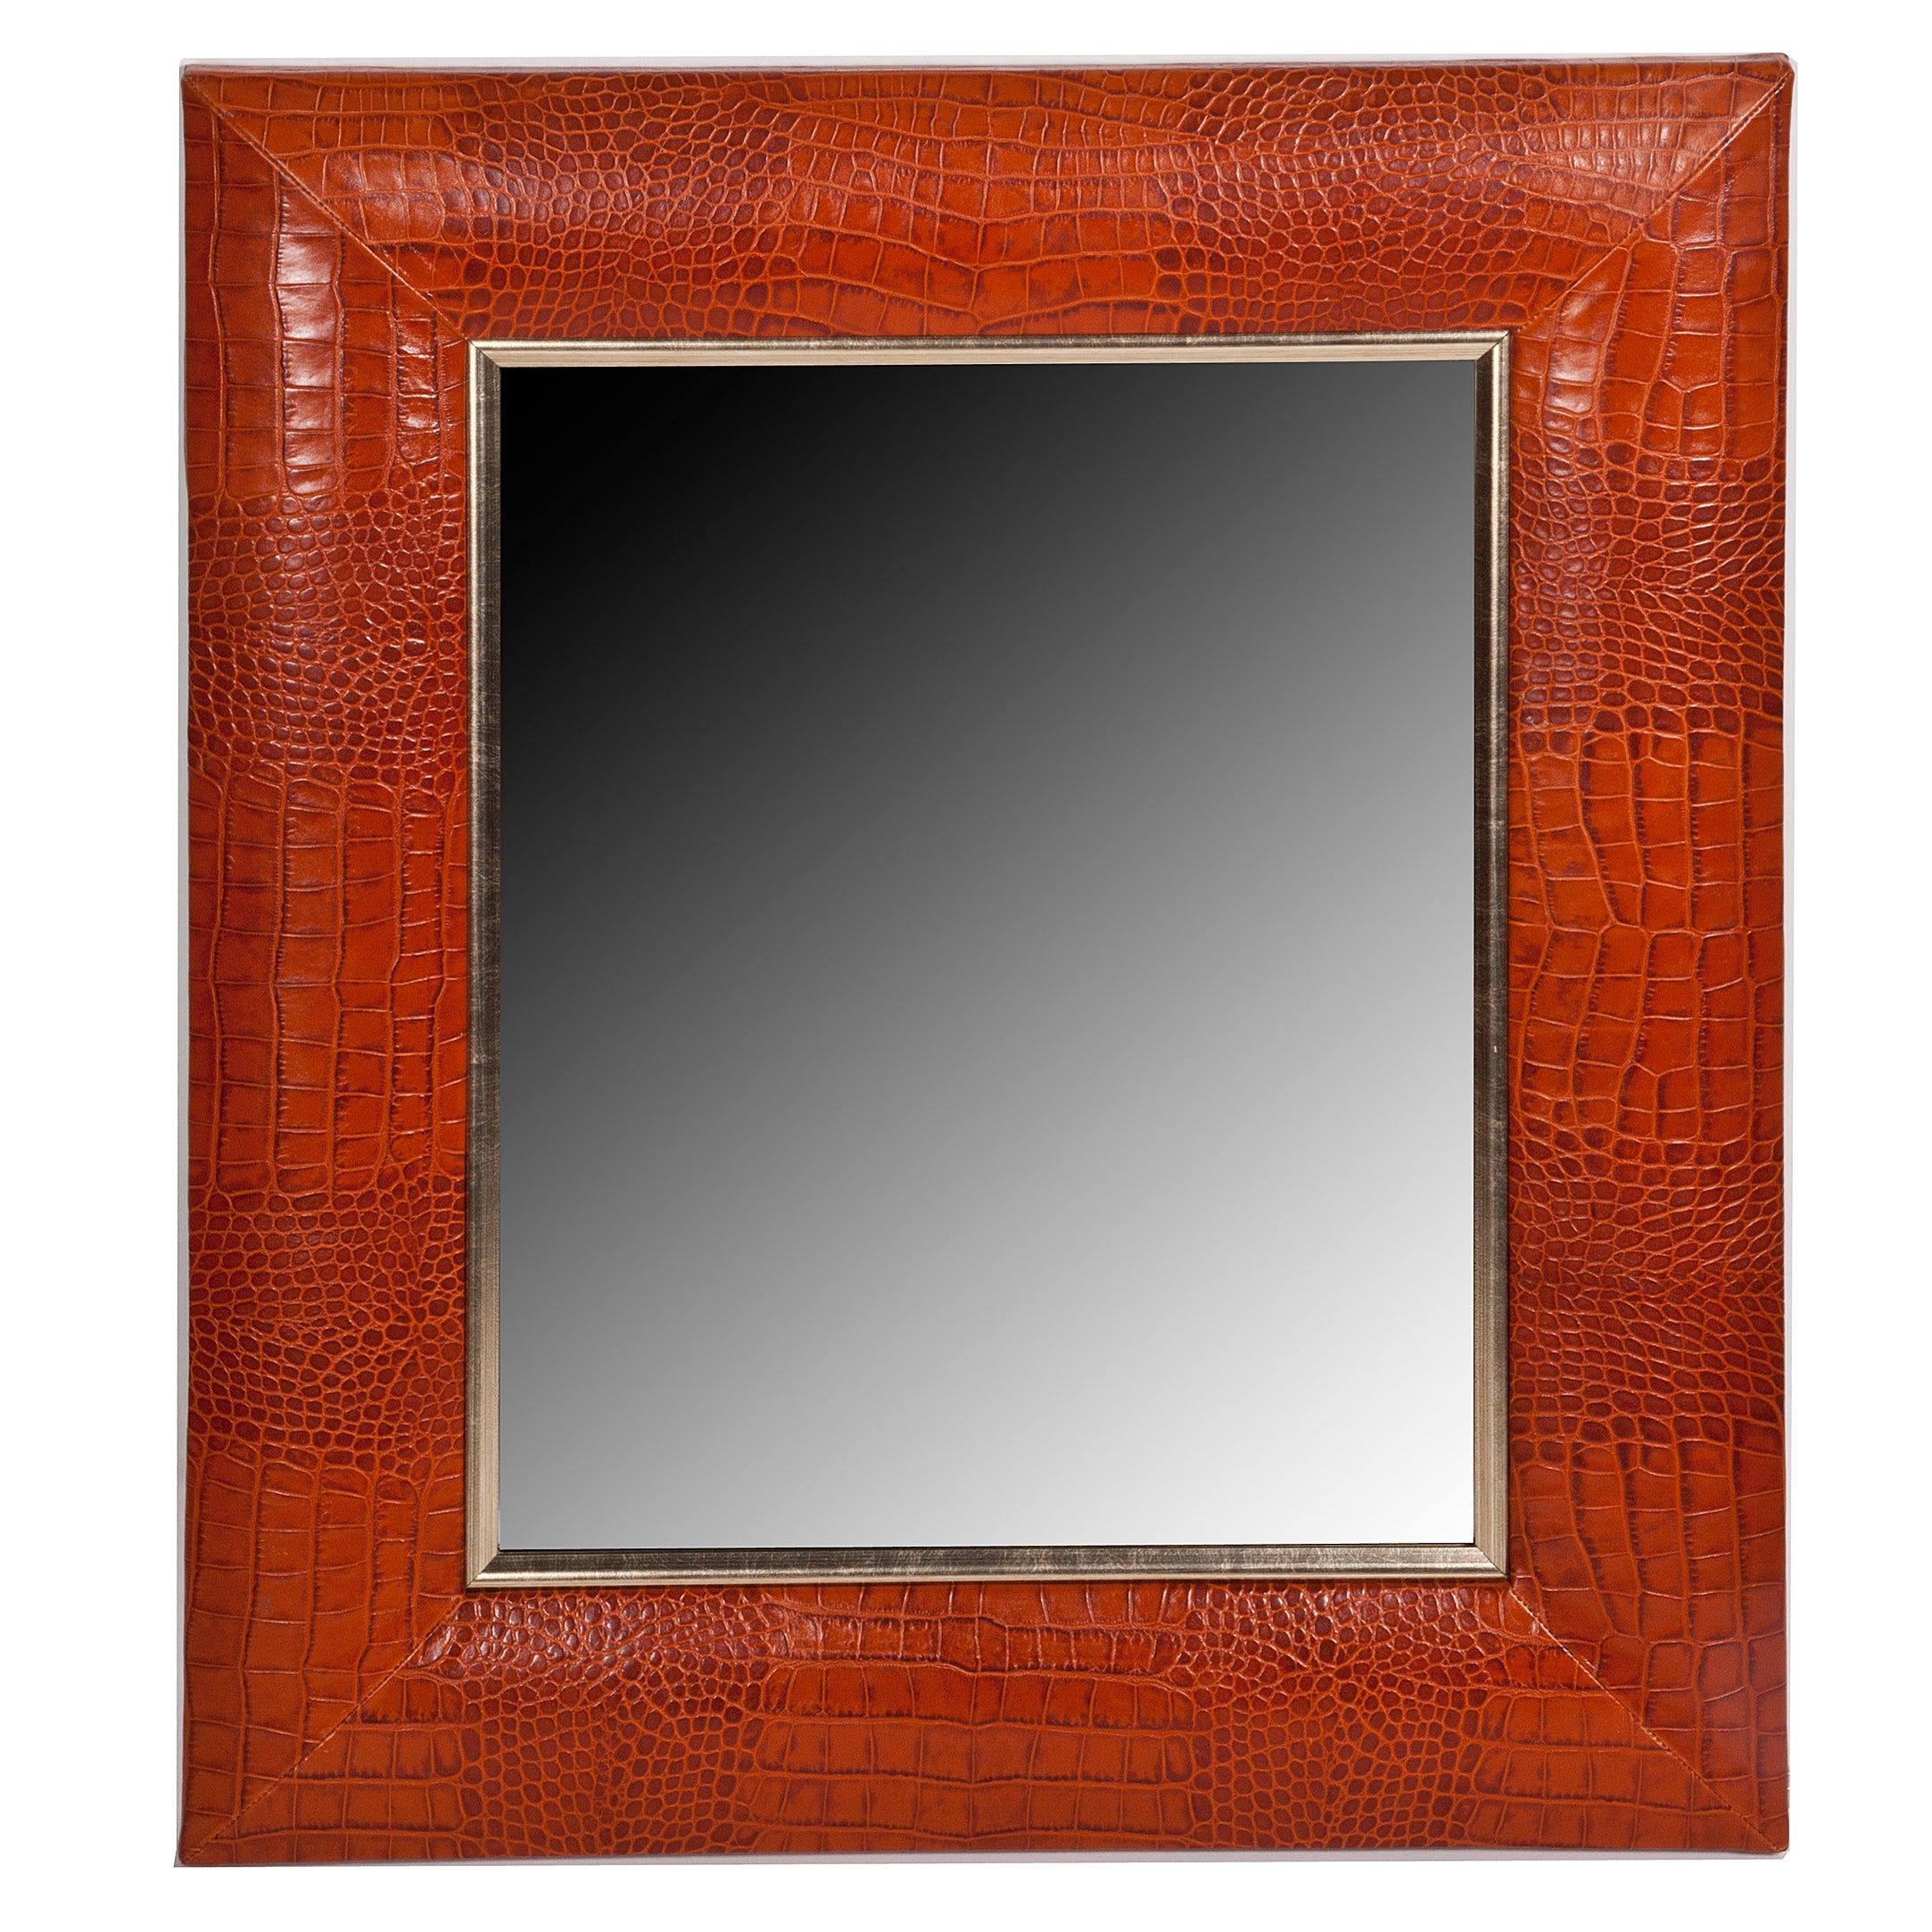 Contemporary Cogna Croc Leather Framed Mirror with Champagne Gold Detailing